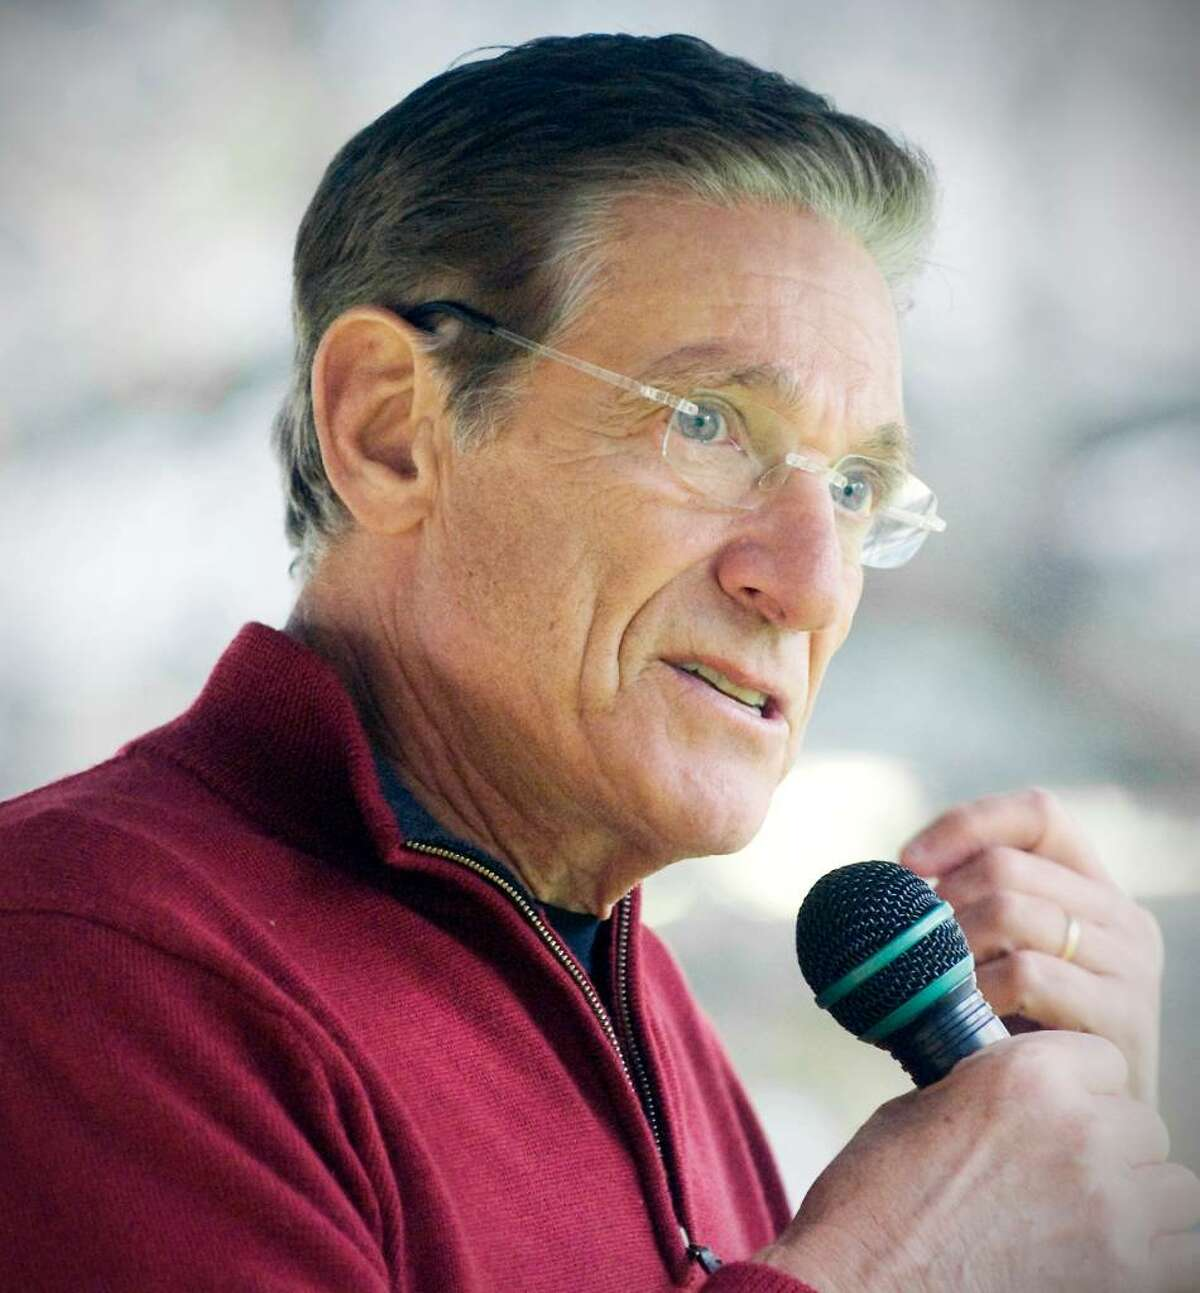 Talk show host Maury Povich addresses the crowd at a balloon training session and press conference in Latham Park for the 2009 UBS Parade Spectacular in Stamford, Conn. on Thursday, November 12, 2009. Povich and his wife Connie Chung are the grand marshals of the parade.